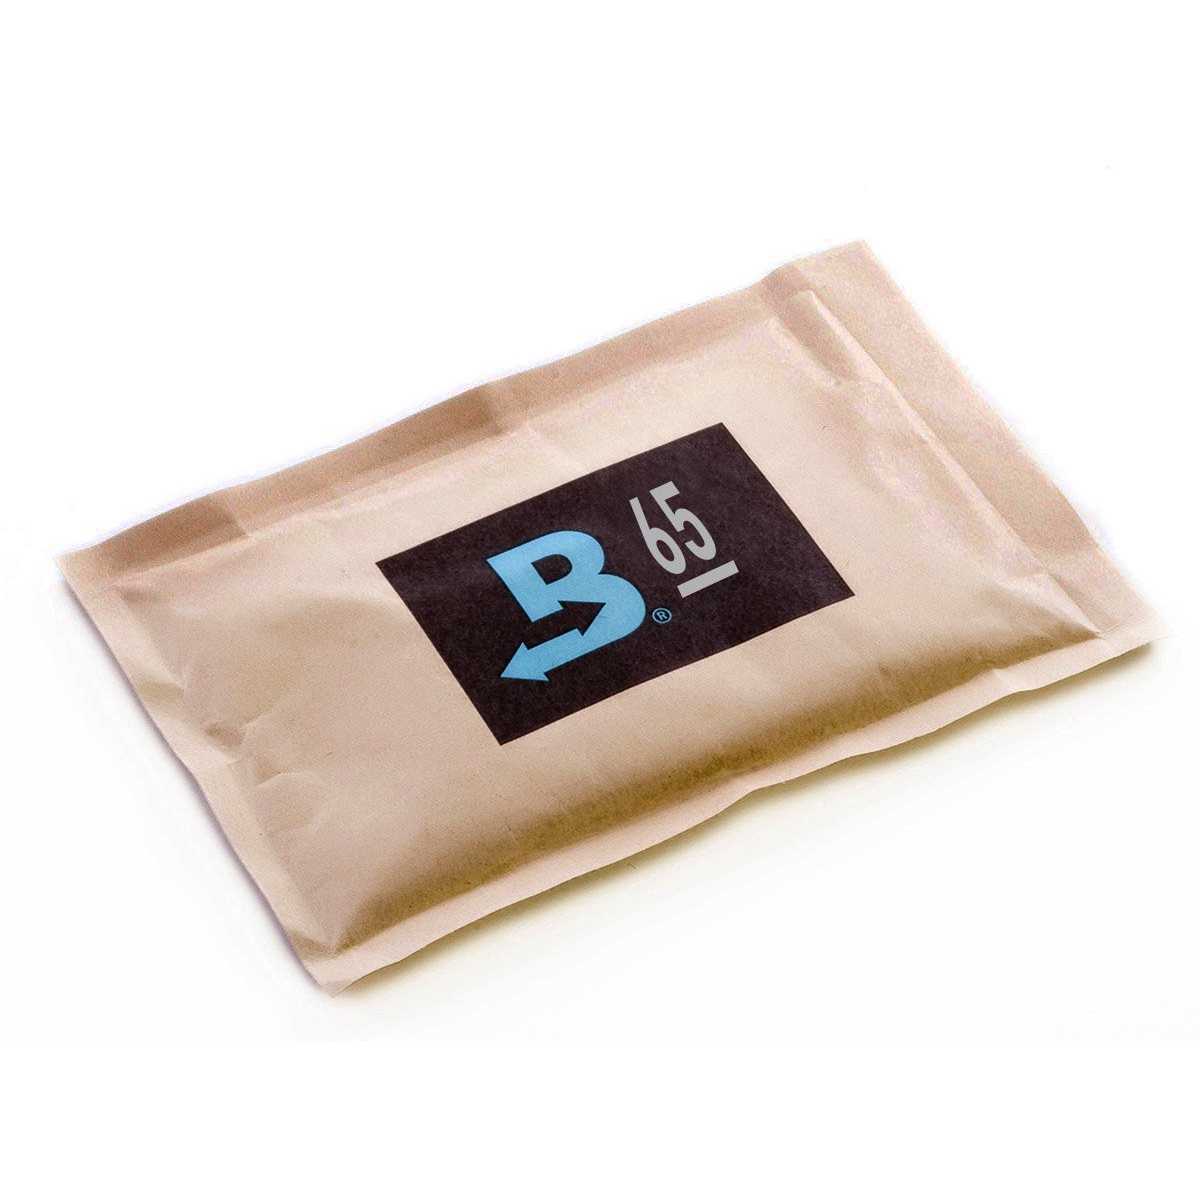 Boveda 2-Way Humidity Control in RH of 65